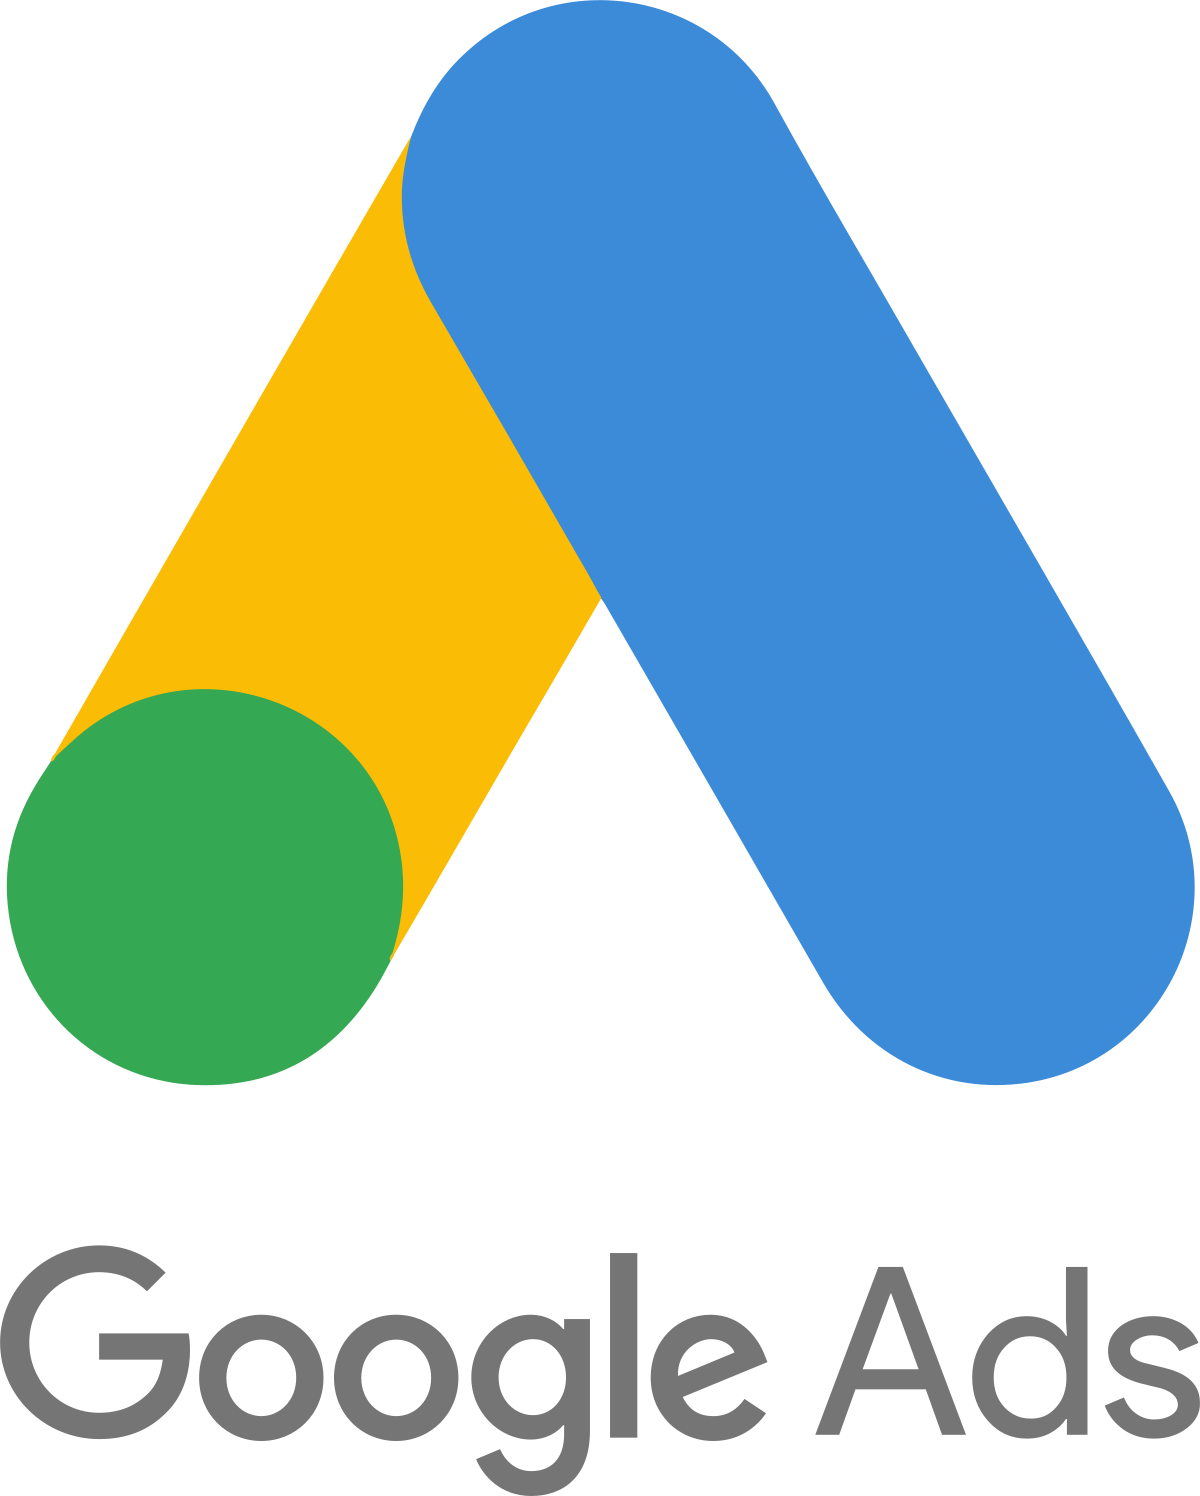 Google adwords png, Google adwords png Transparent FREE for.